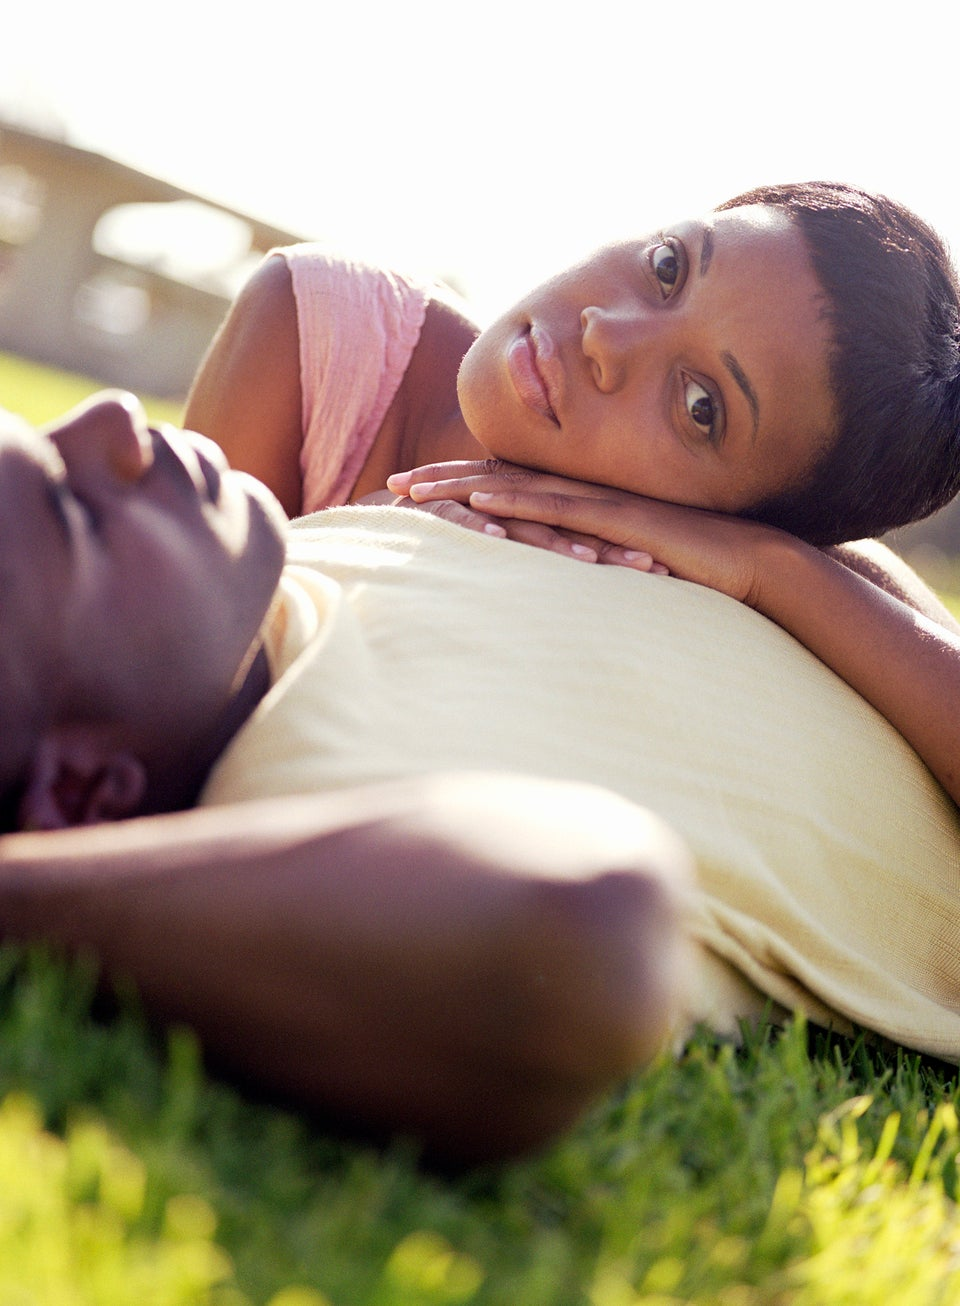 Intimacy Intervention: 'My Husband Says His Mind Wants Me But His Body Wants Her'